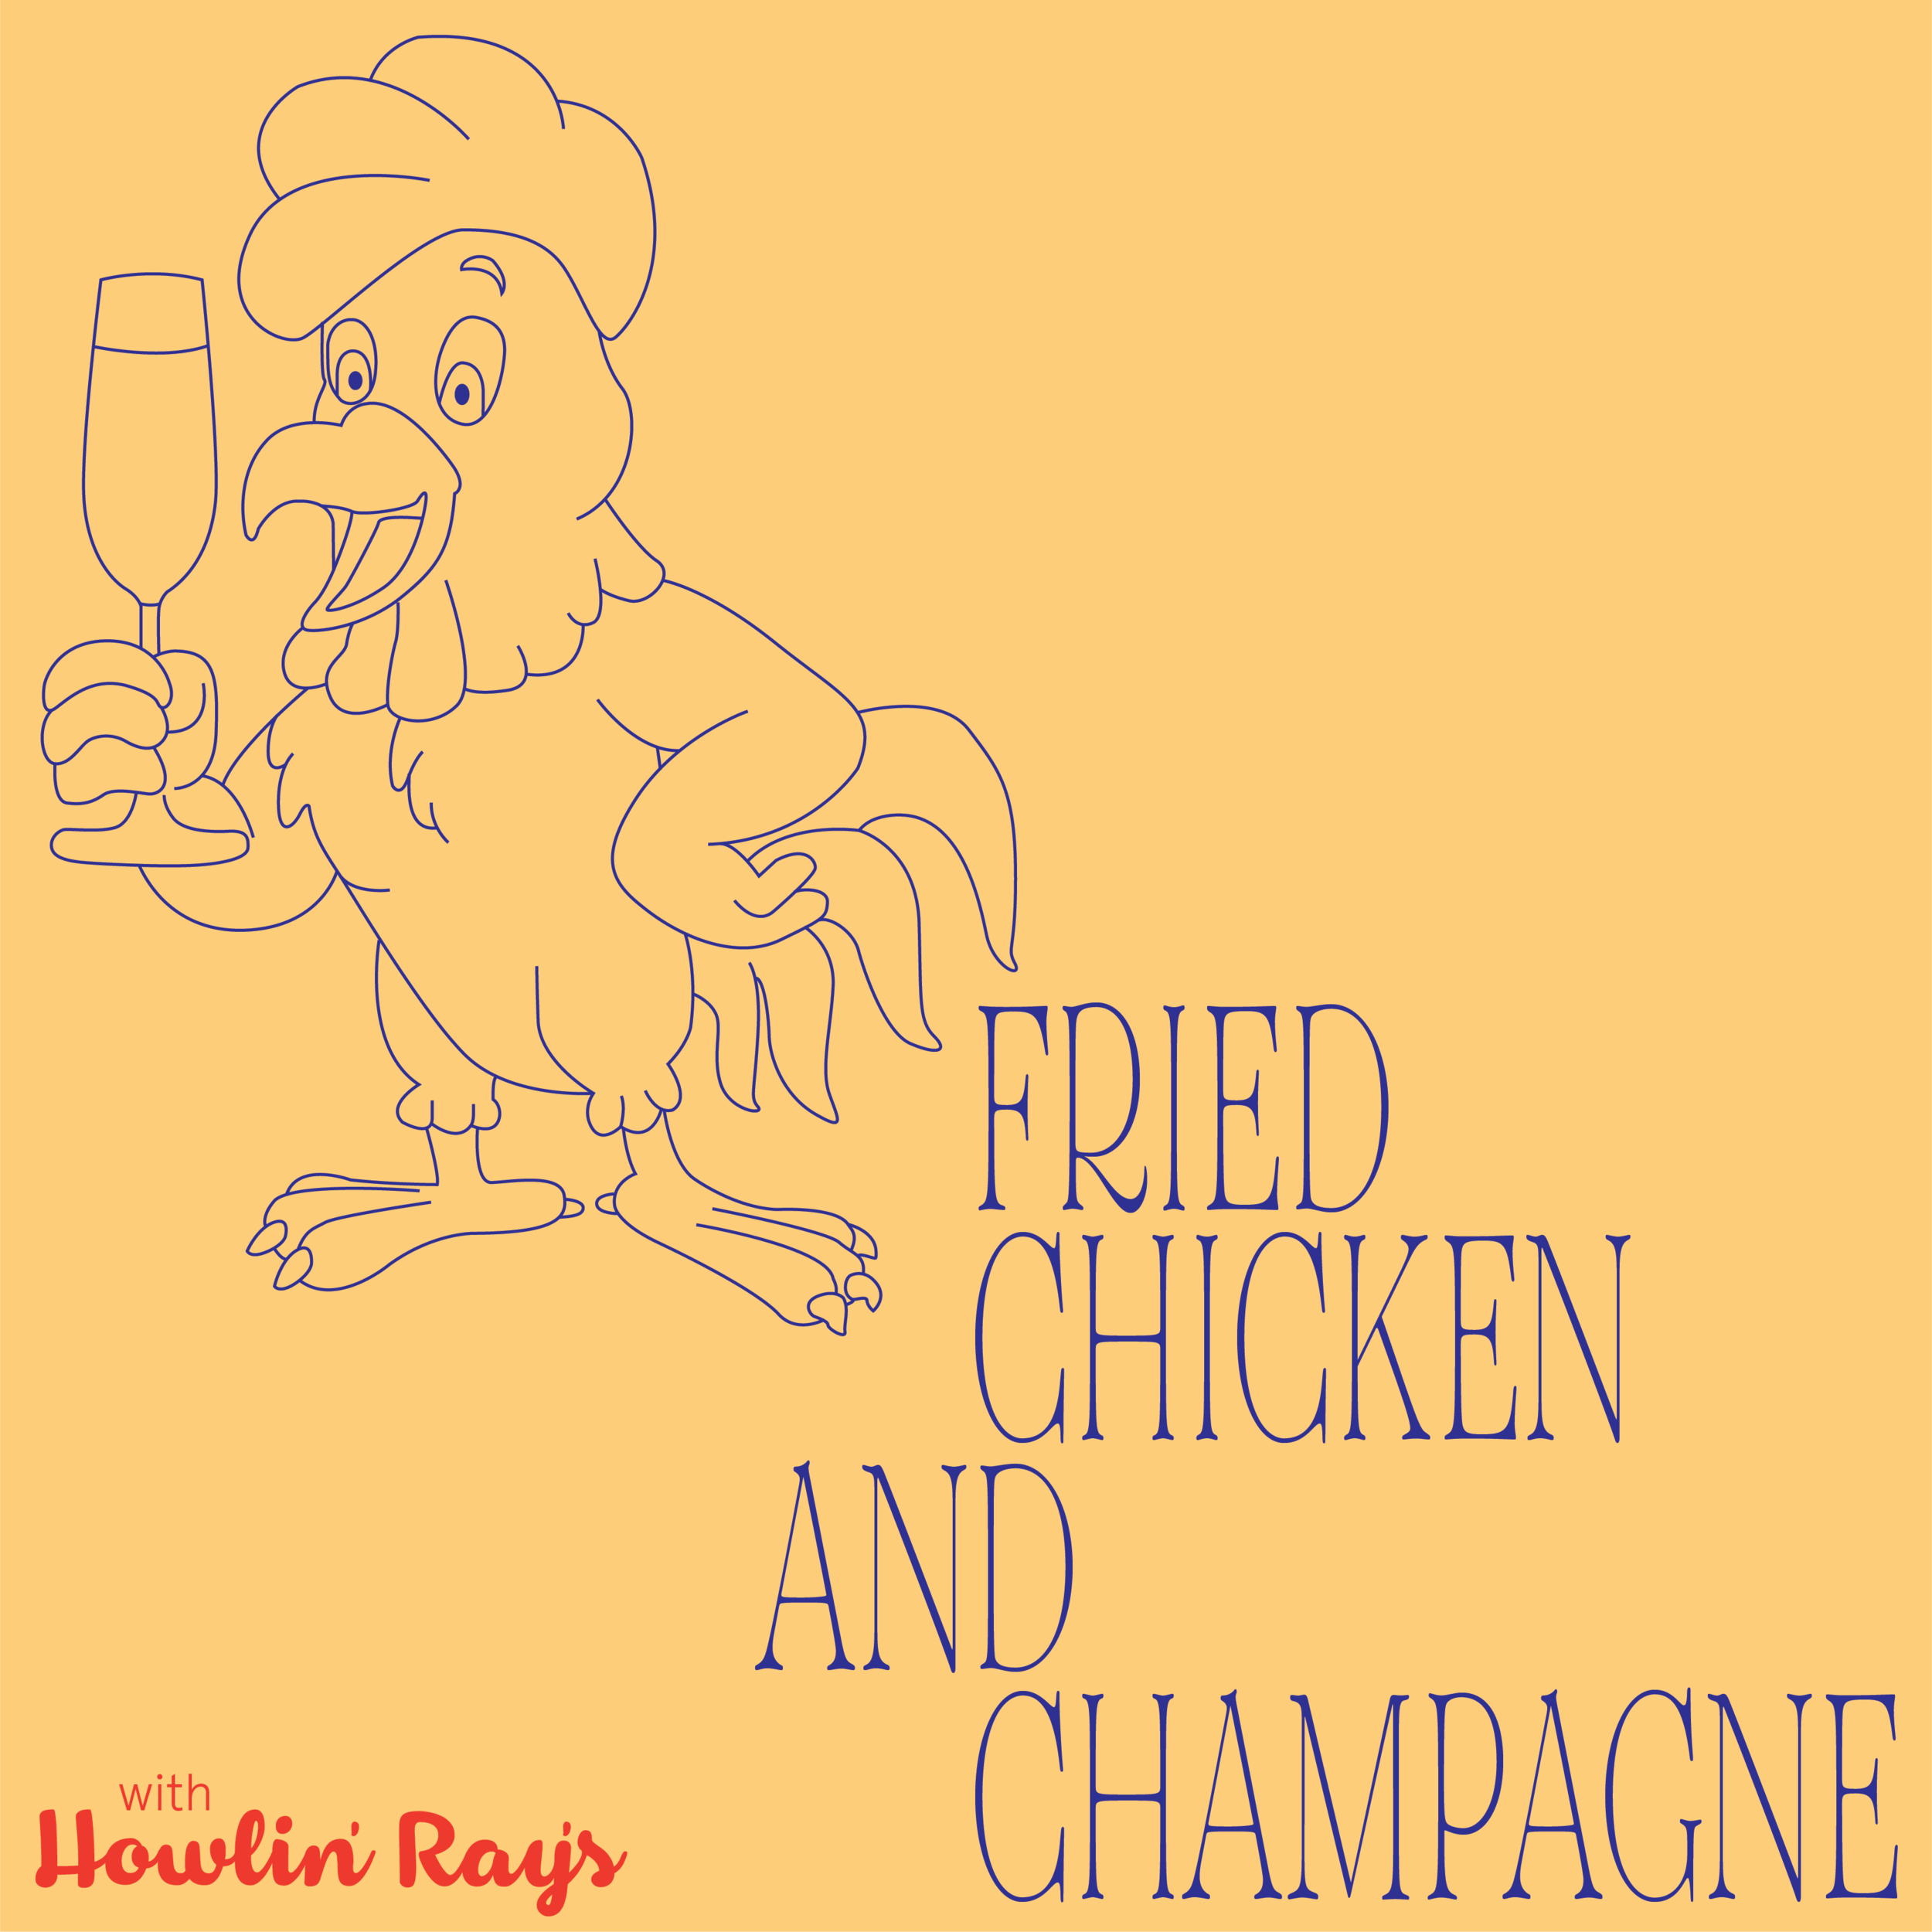 Fried Chicken and Champagne Downtown Los Angeles August 10, 2019 6:00 PM - 8:15 PM